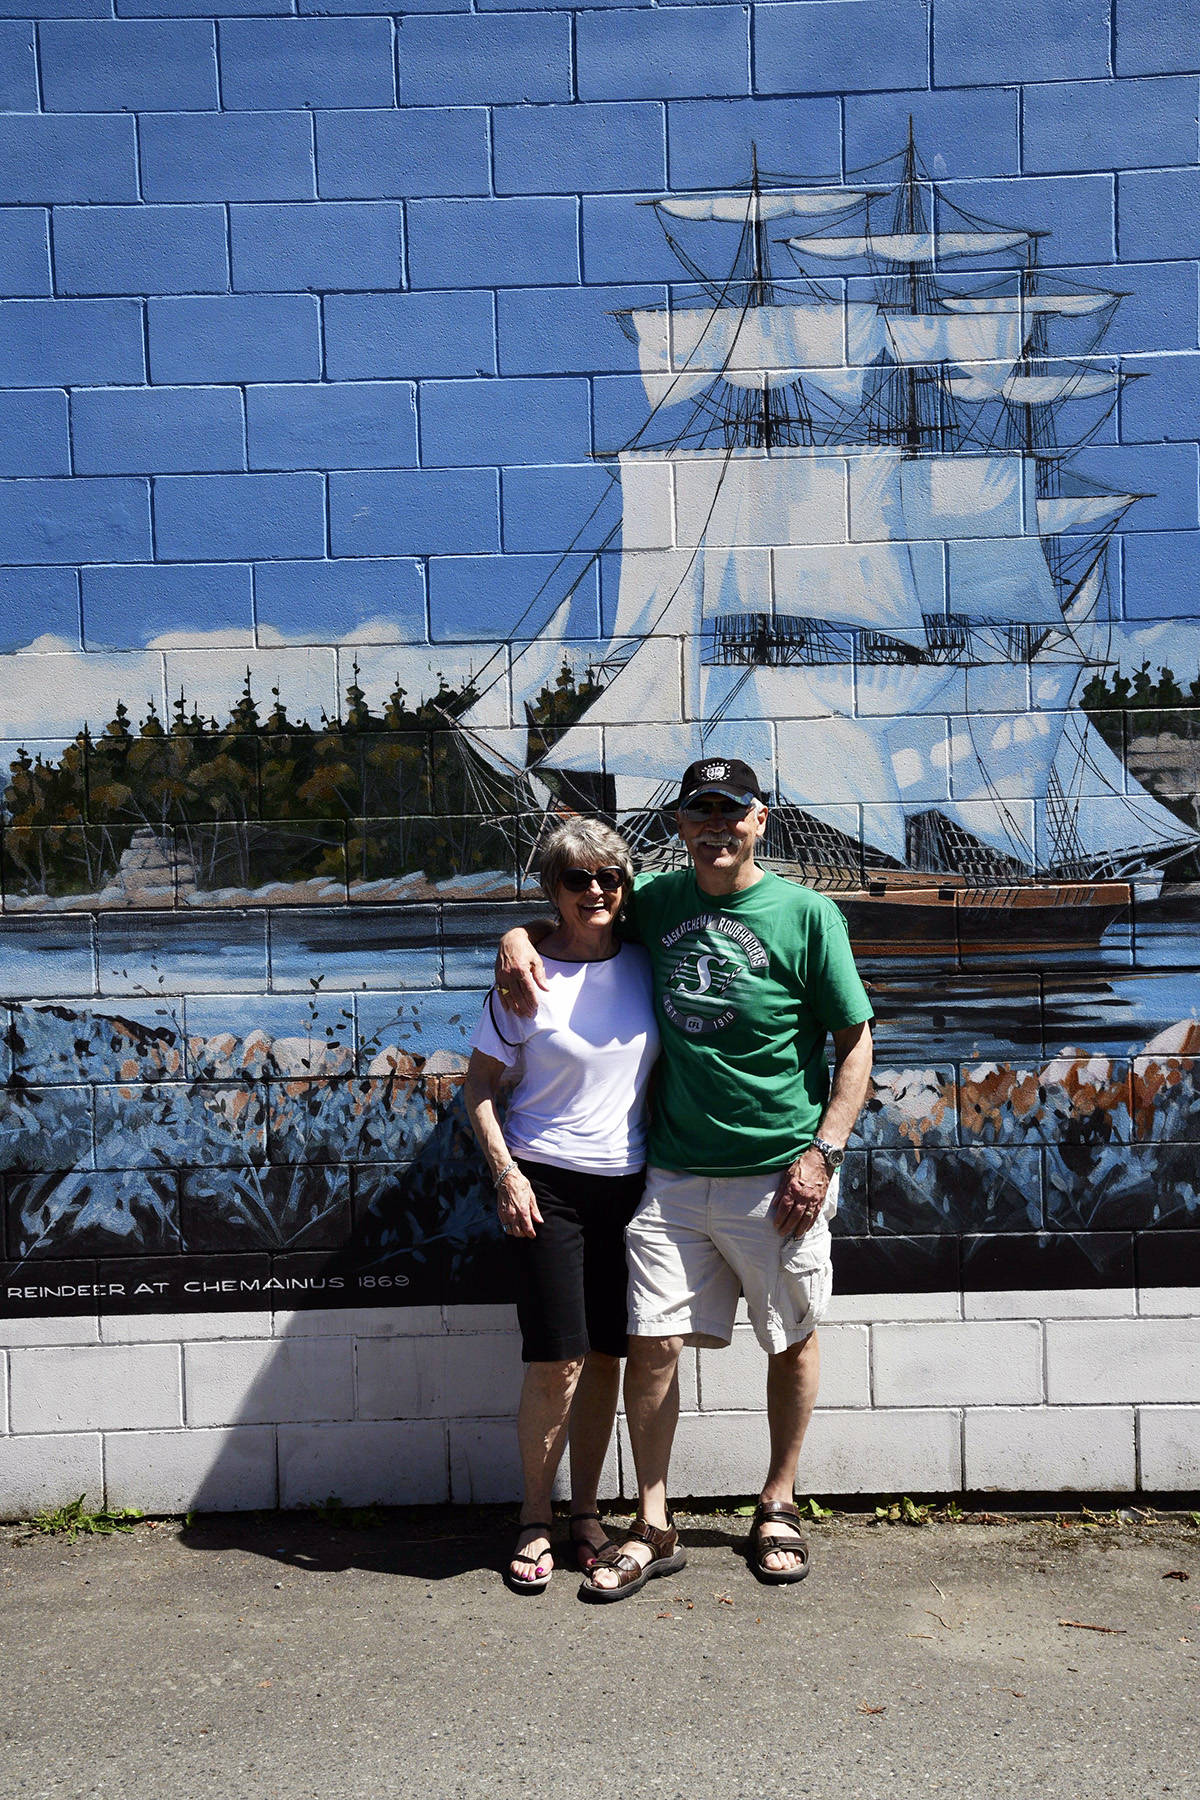 Doreen and Ray Zielke at the HMCS Reindeer mural. (Photo submitted)